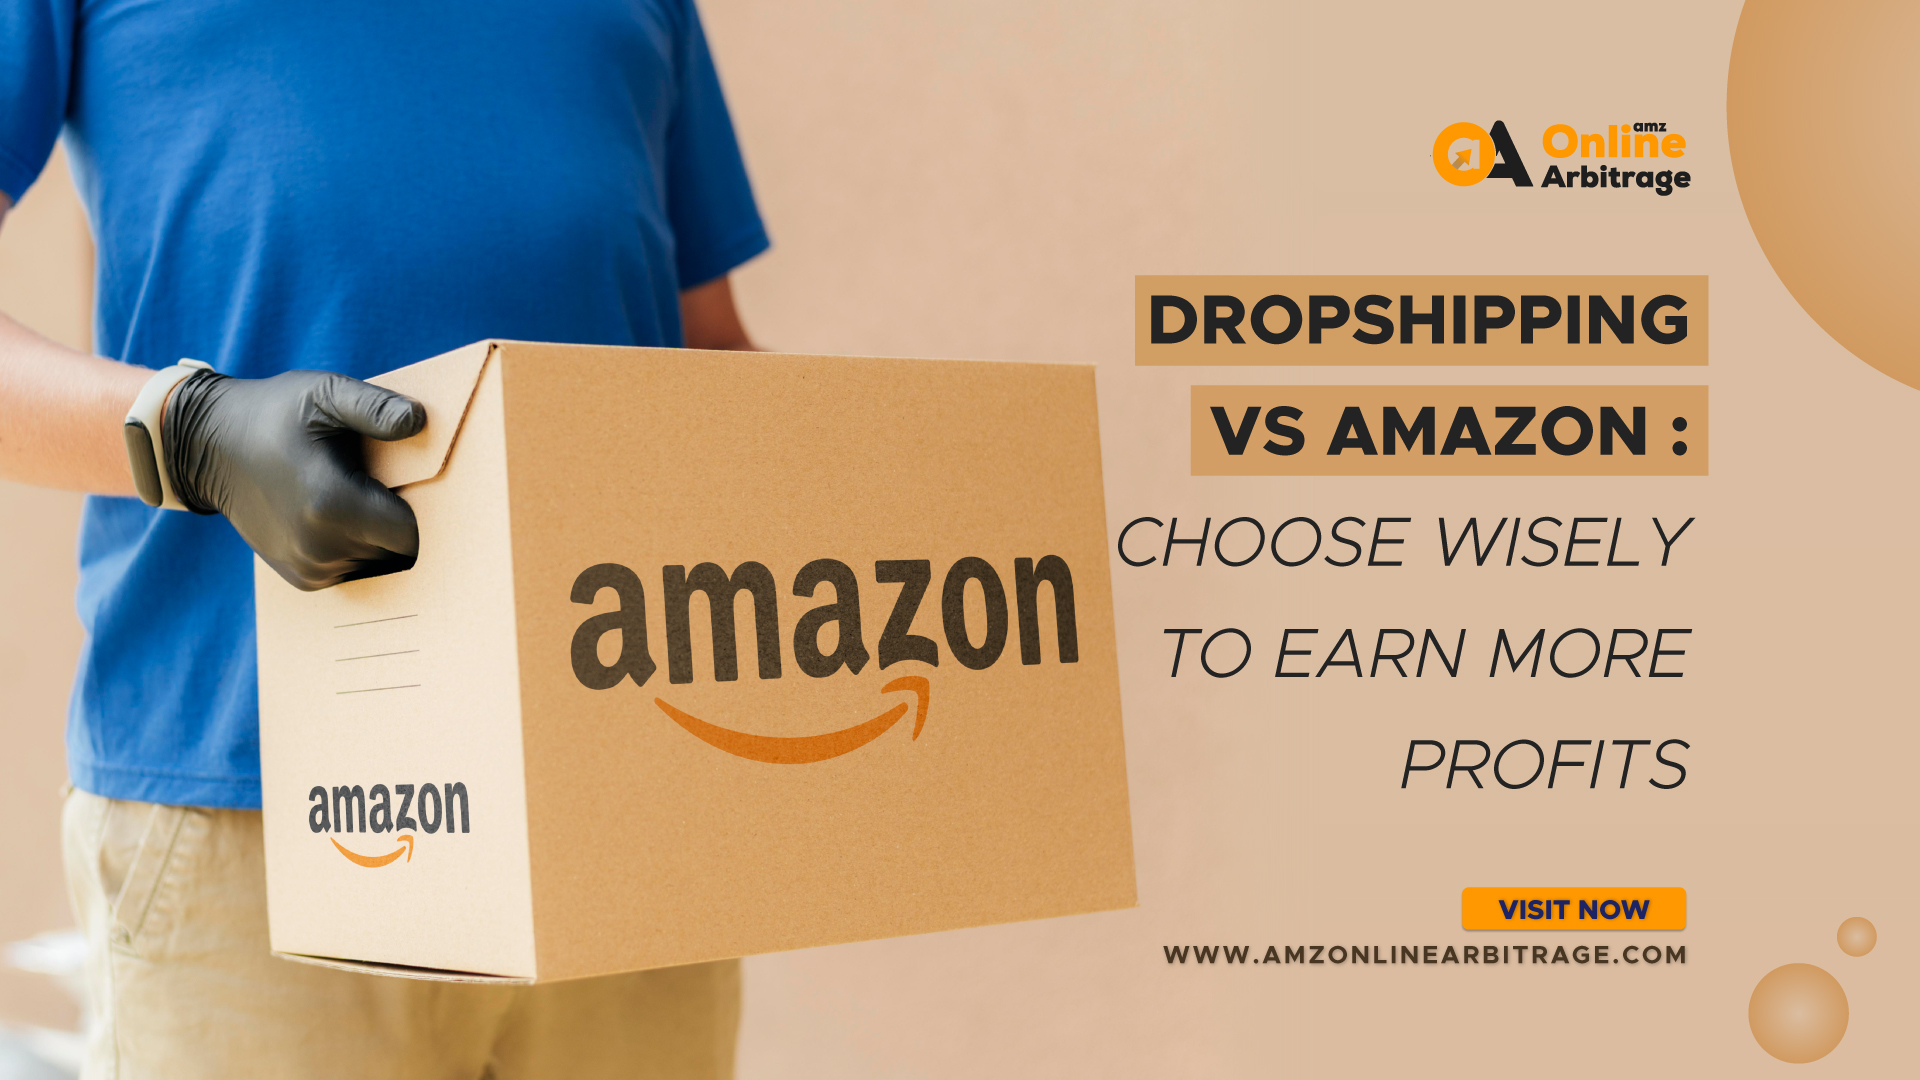 AMAZON FBA VS DROPSHIPPING - FIND WHICH IS THE BEST!